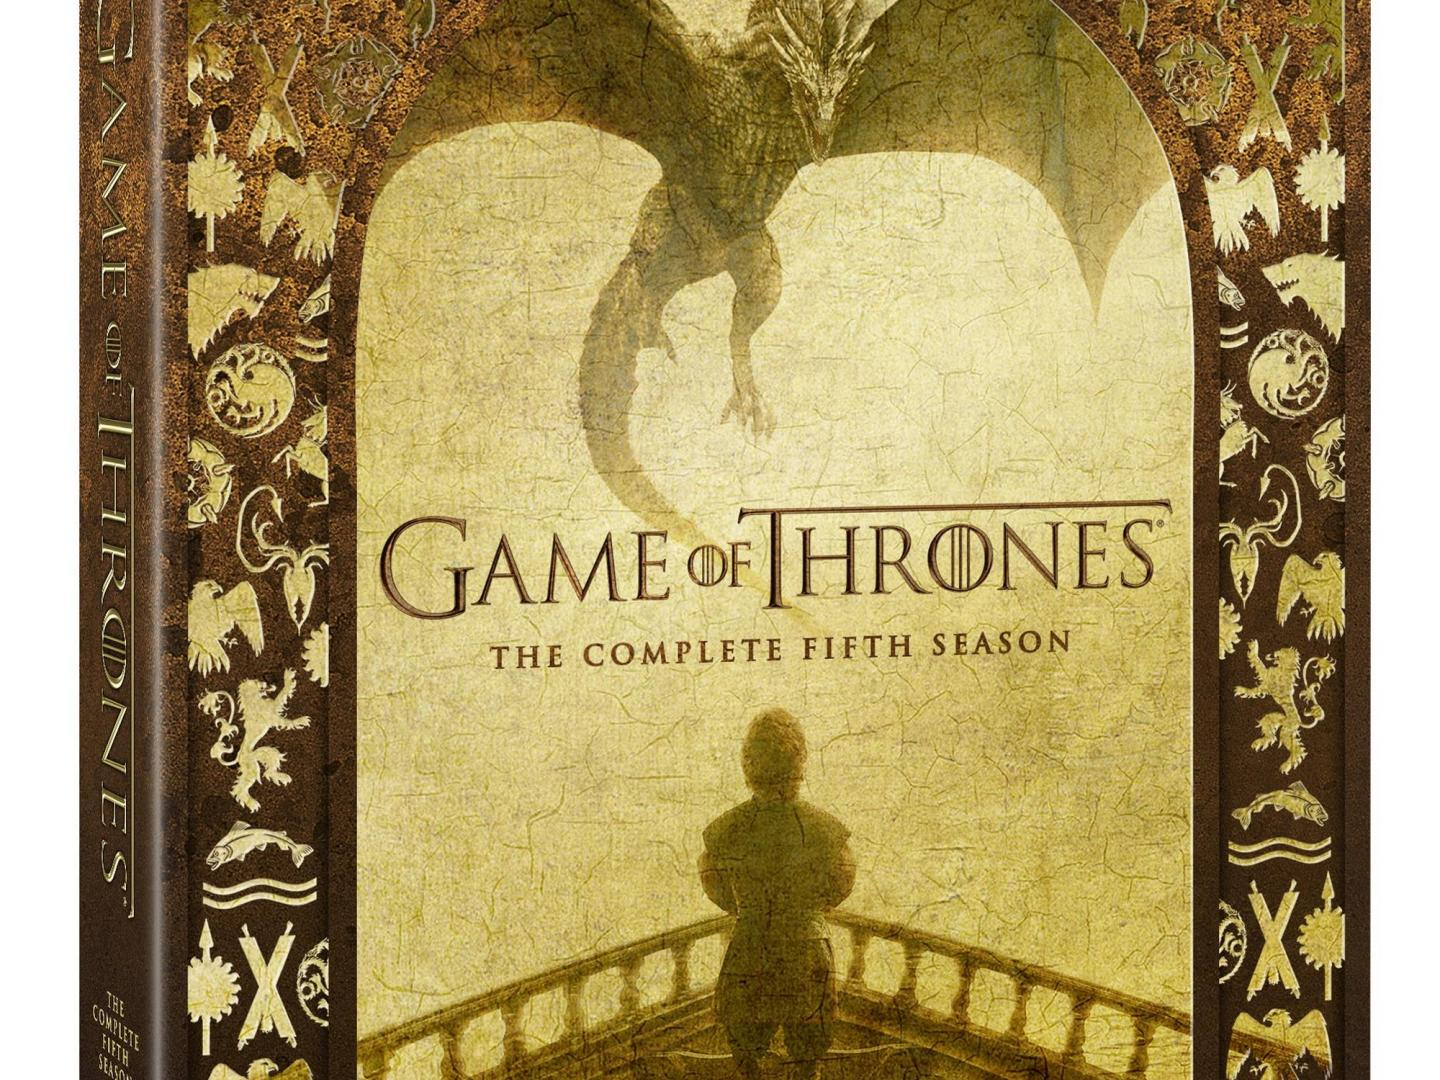 Game of Thrones - Histories and Lore Season 5 Thumbnail